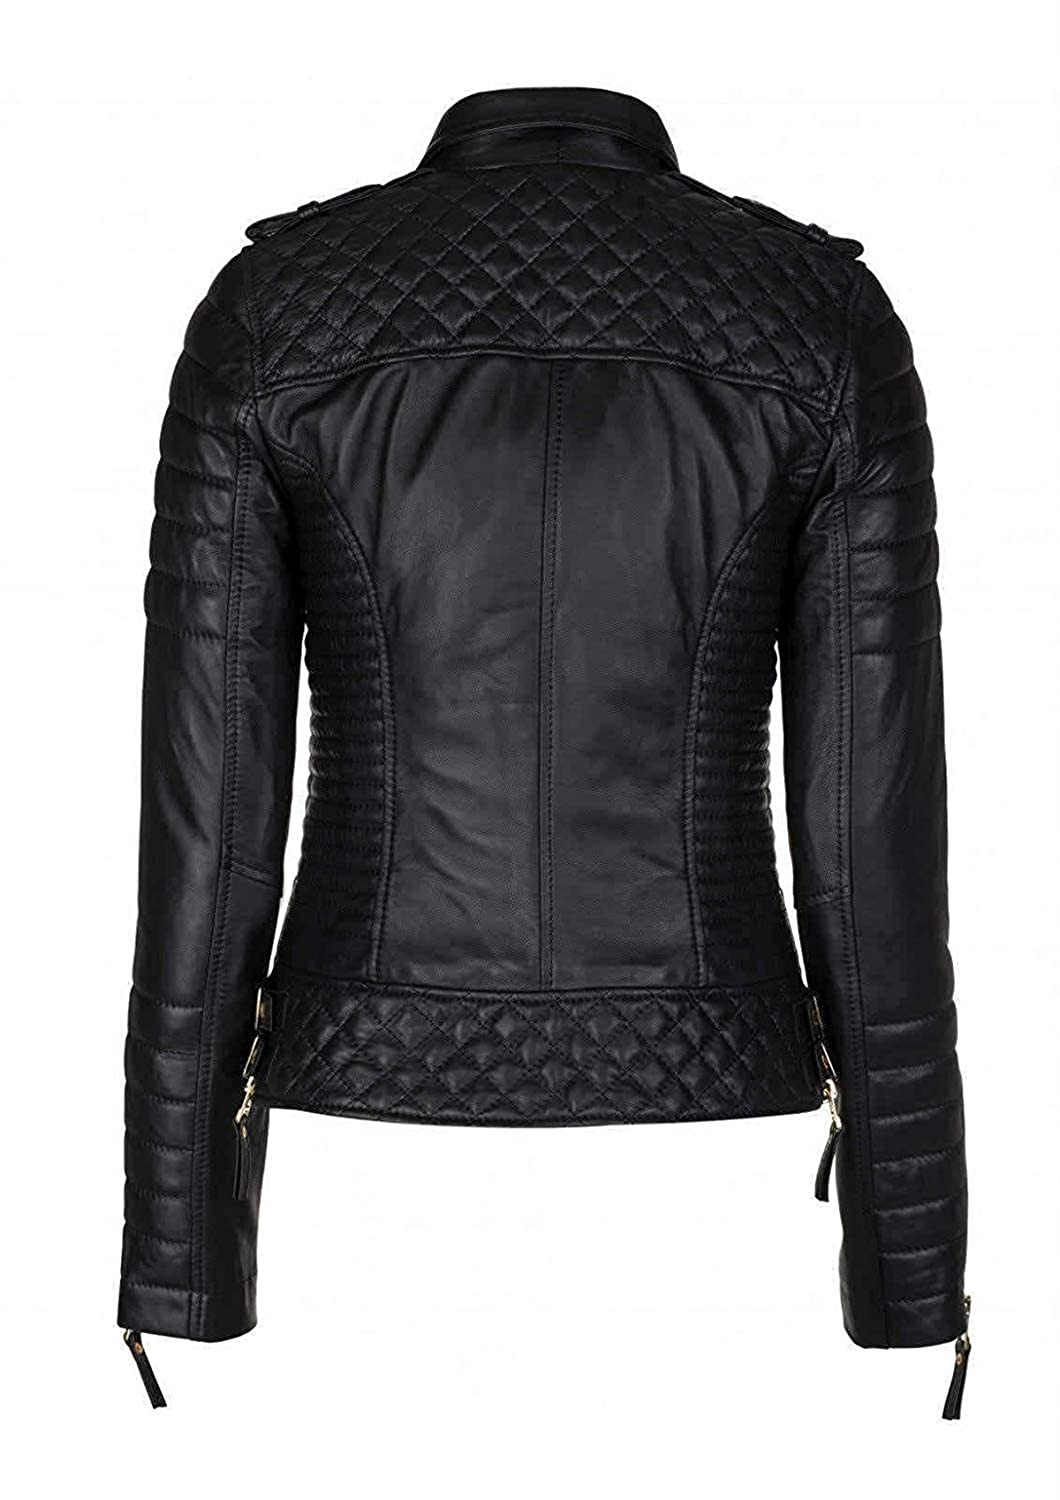 Habbiler Women's Quilted Slim Fit Zipper Pockets Black Motorcycle Leather Jacket